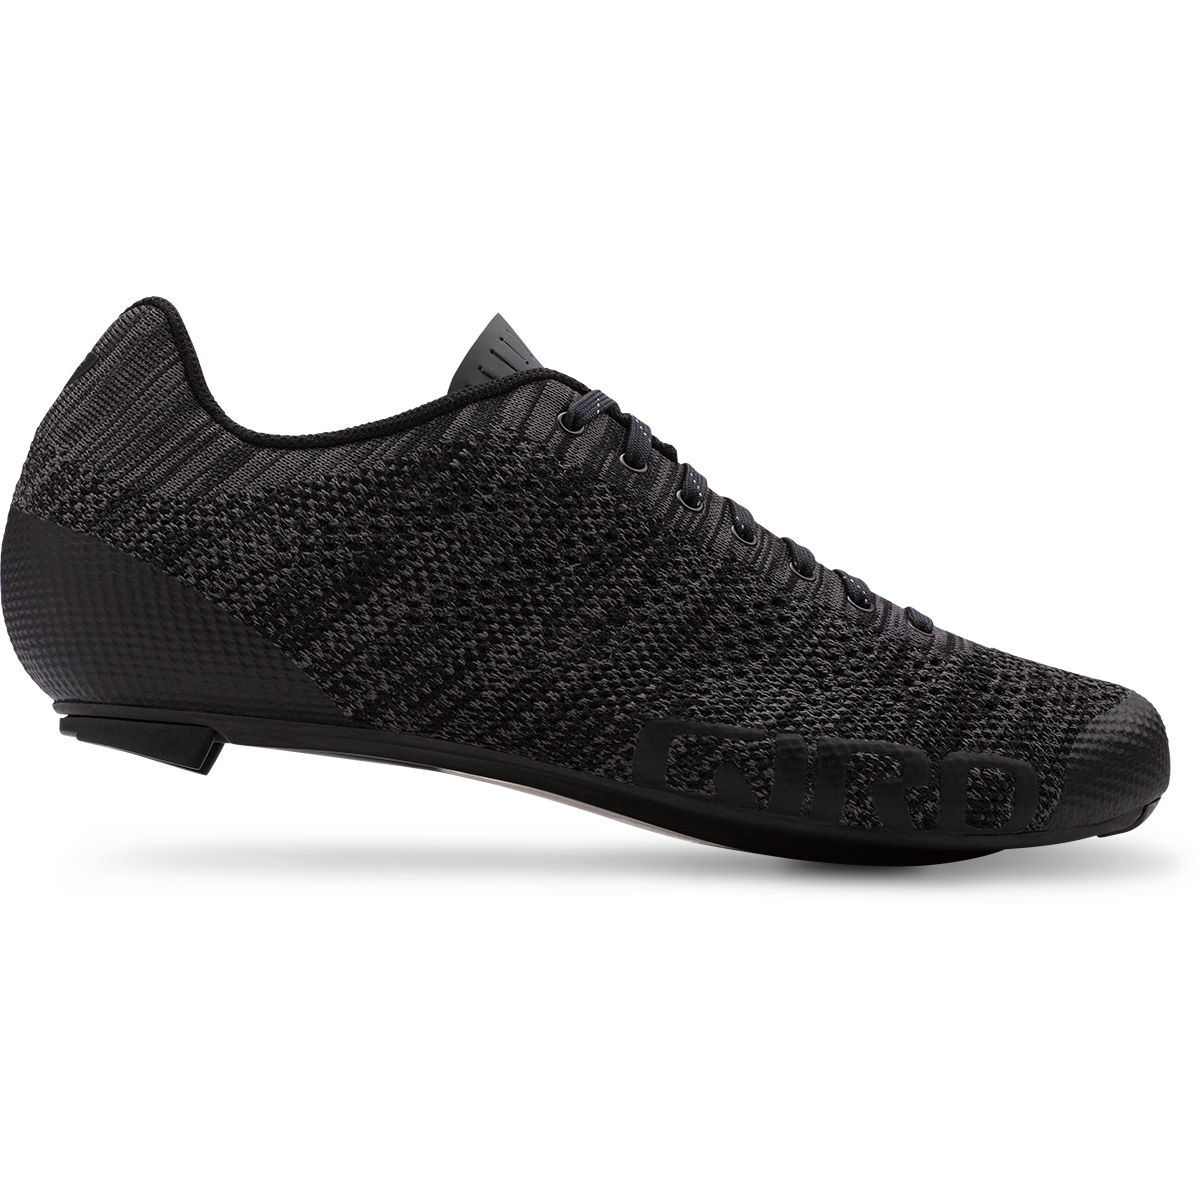 Zapatillas de carretera Giro Empire E70 Knit - Zapatillas para bicicletas de carretera